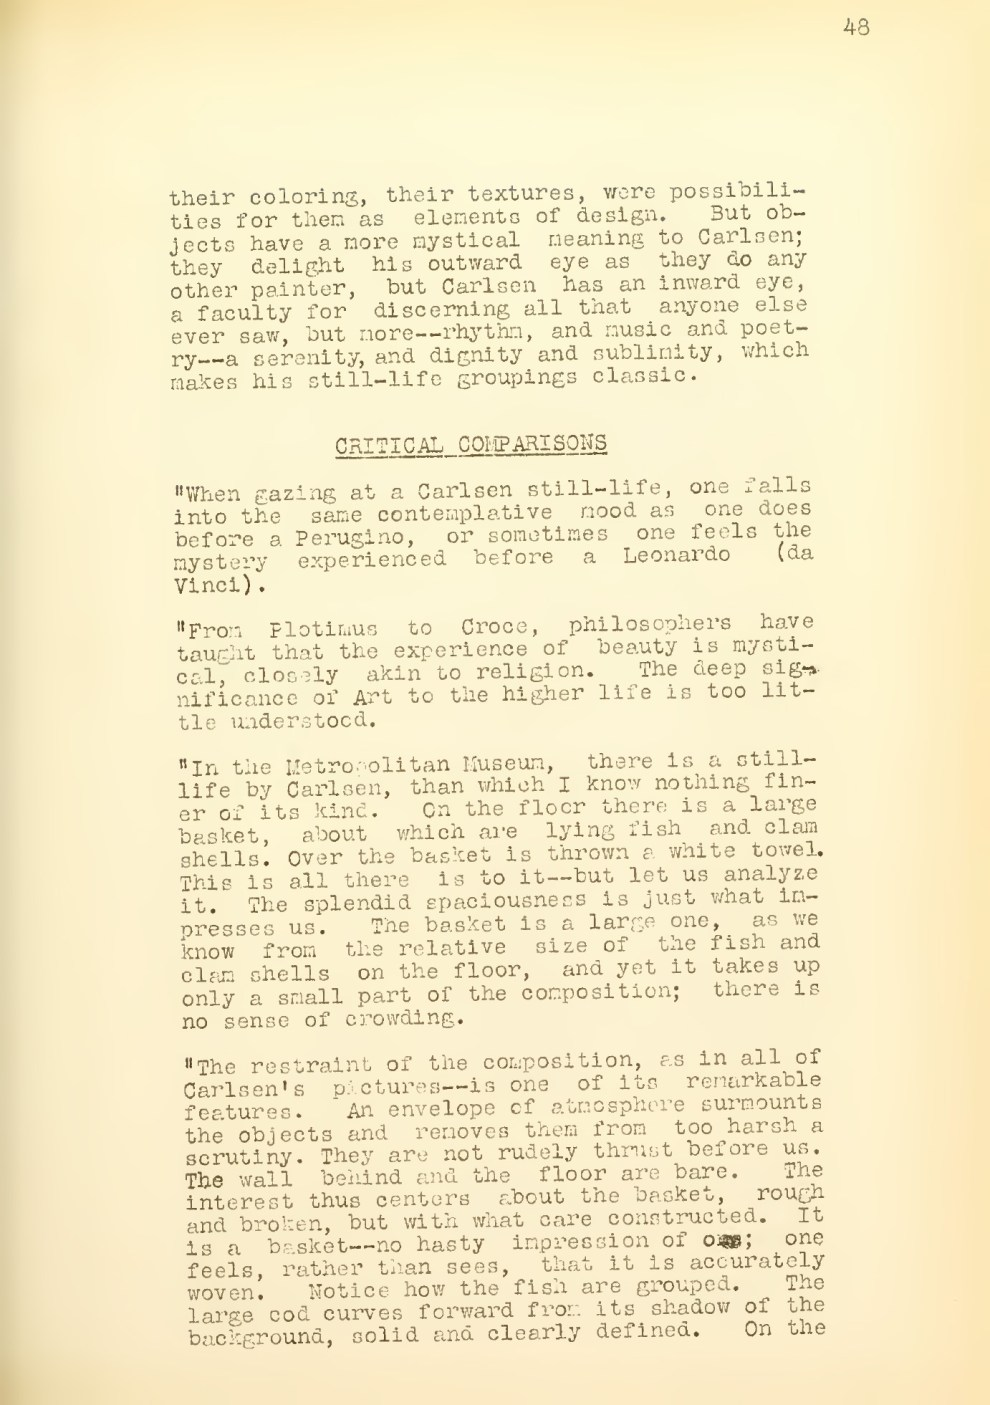 """""""W.P.A. Project 2871, OP 65-3-3632: Abstract from California Art Research"""" Edited by Gene Haily, Volume 5, pages 27-63"""